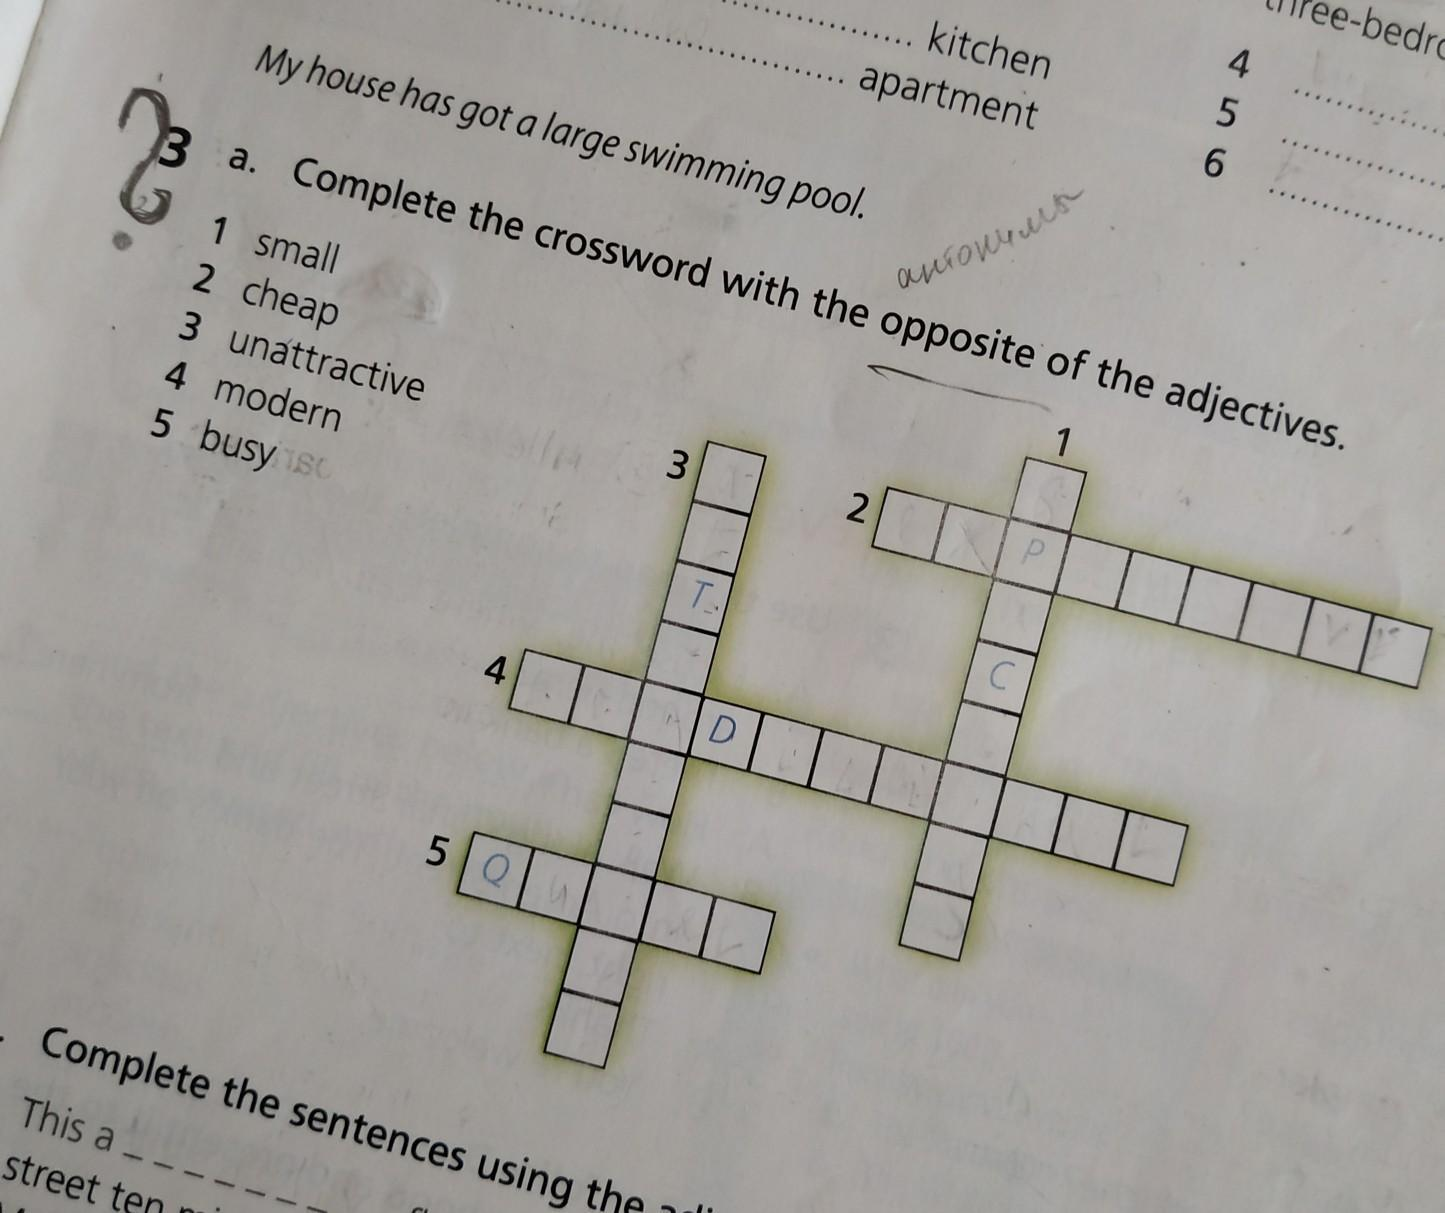 Complete the crossword with the opposite of the